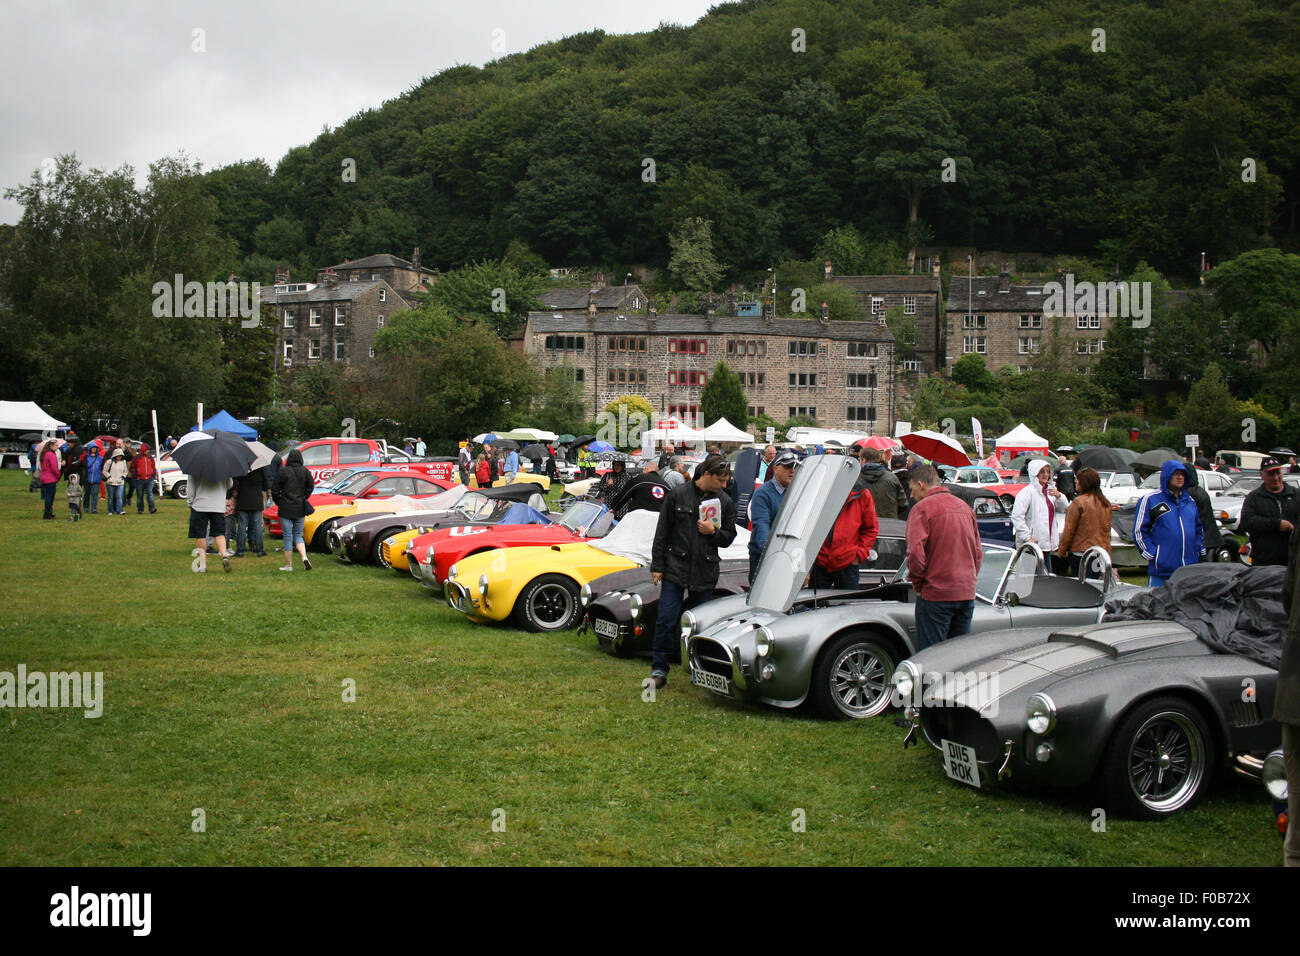 Row Of Classic Vintage Sports Cars At Show Outdoors In The Rain